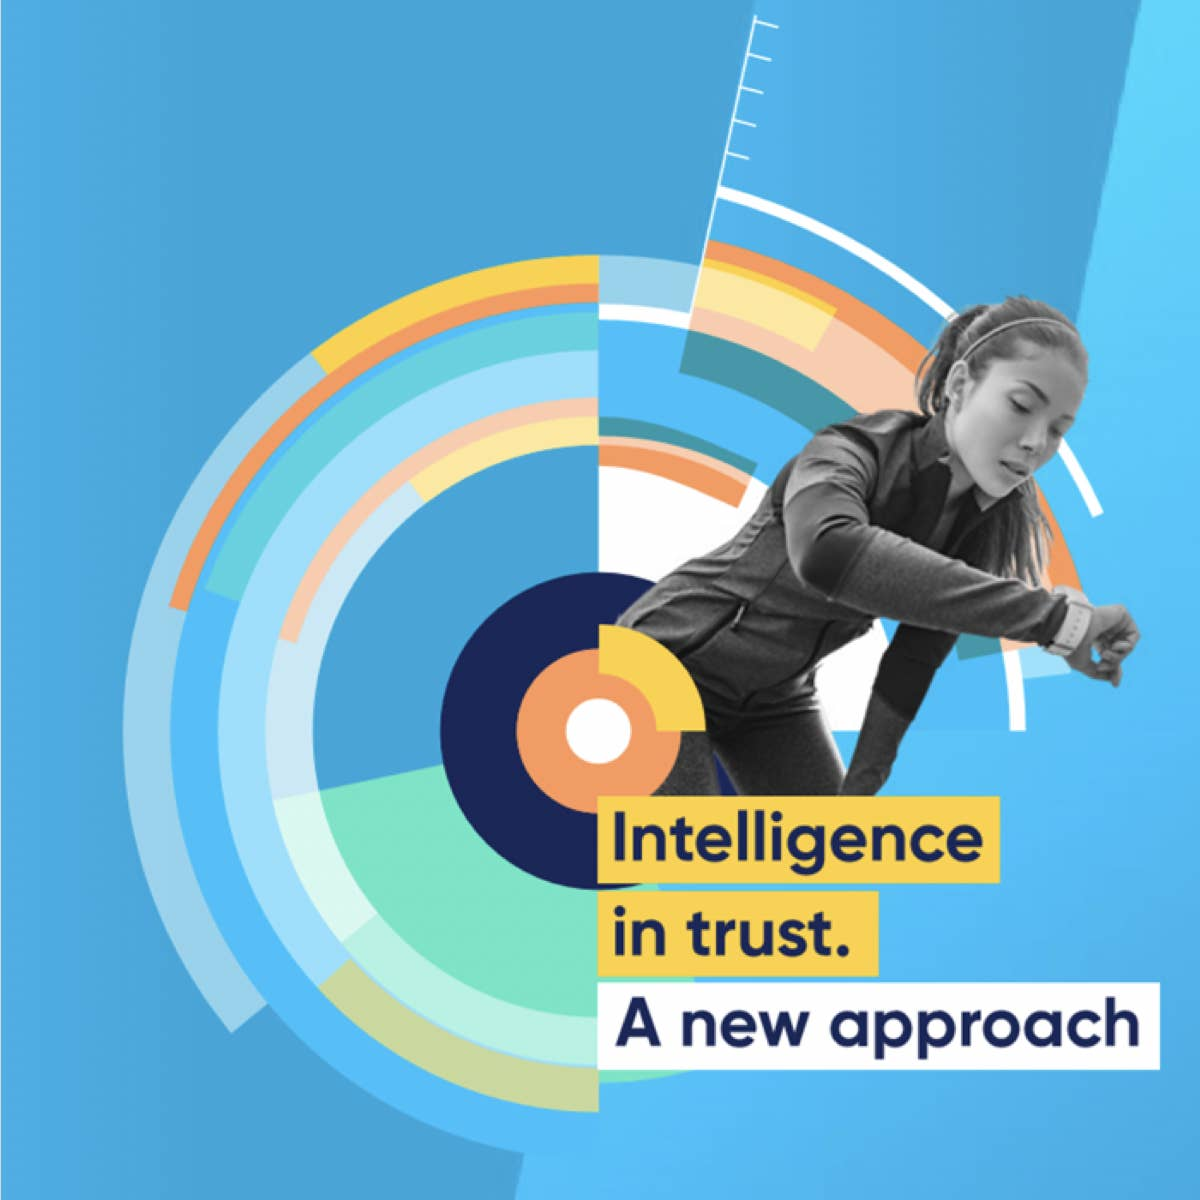 Intelligence in trust. A new approach.